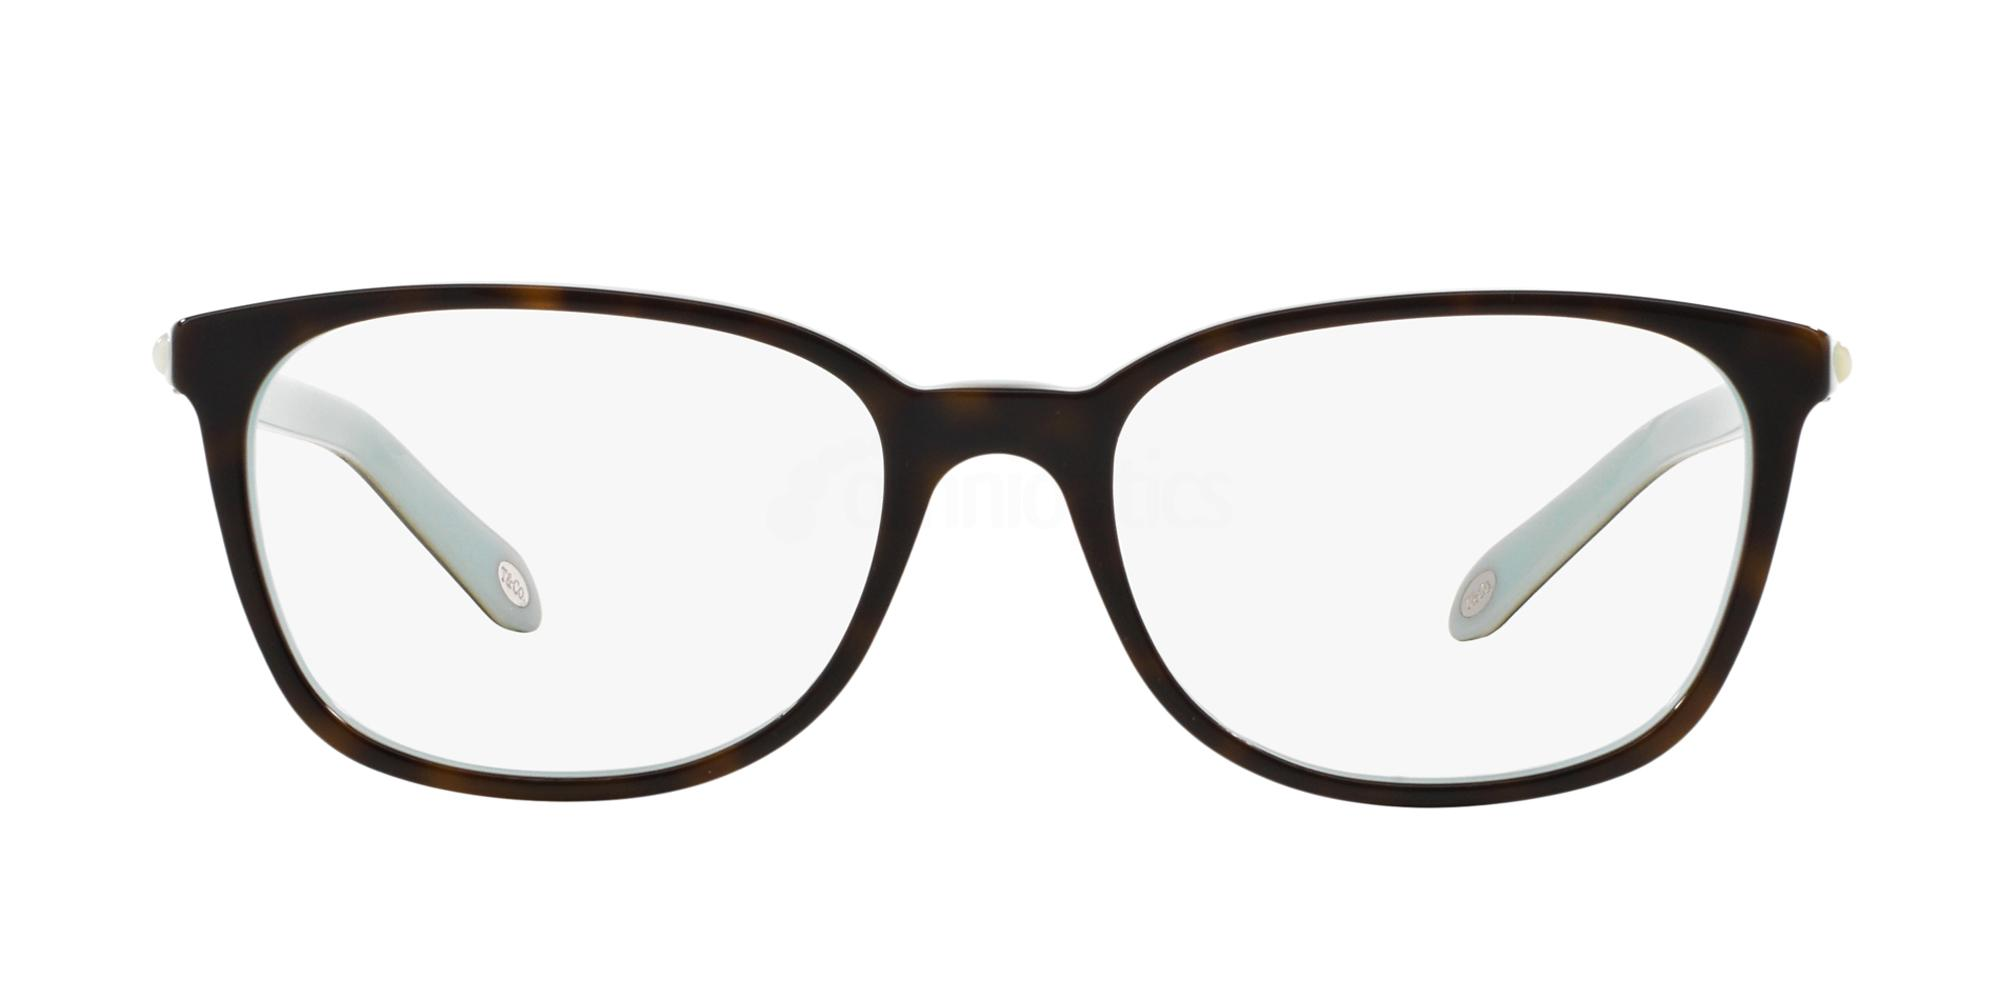 8134 TF2109HB Glasses, Tiffany & Co.